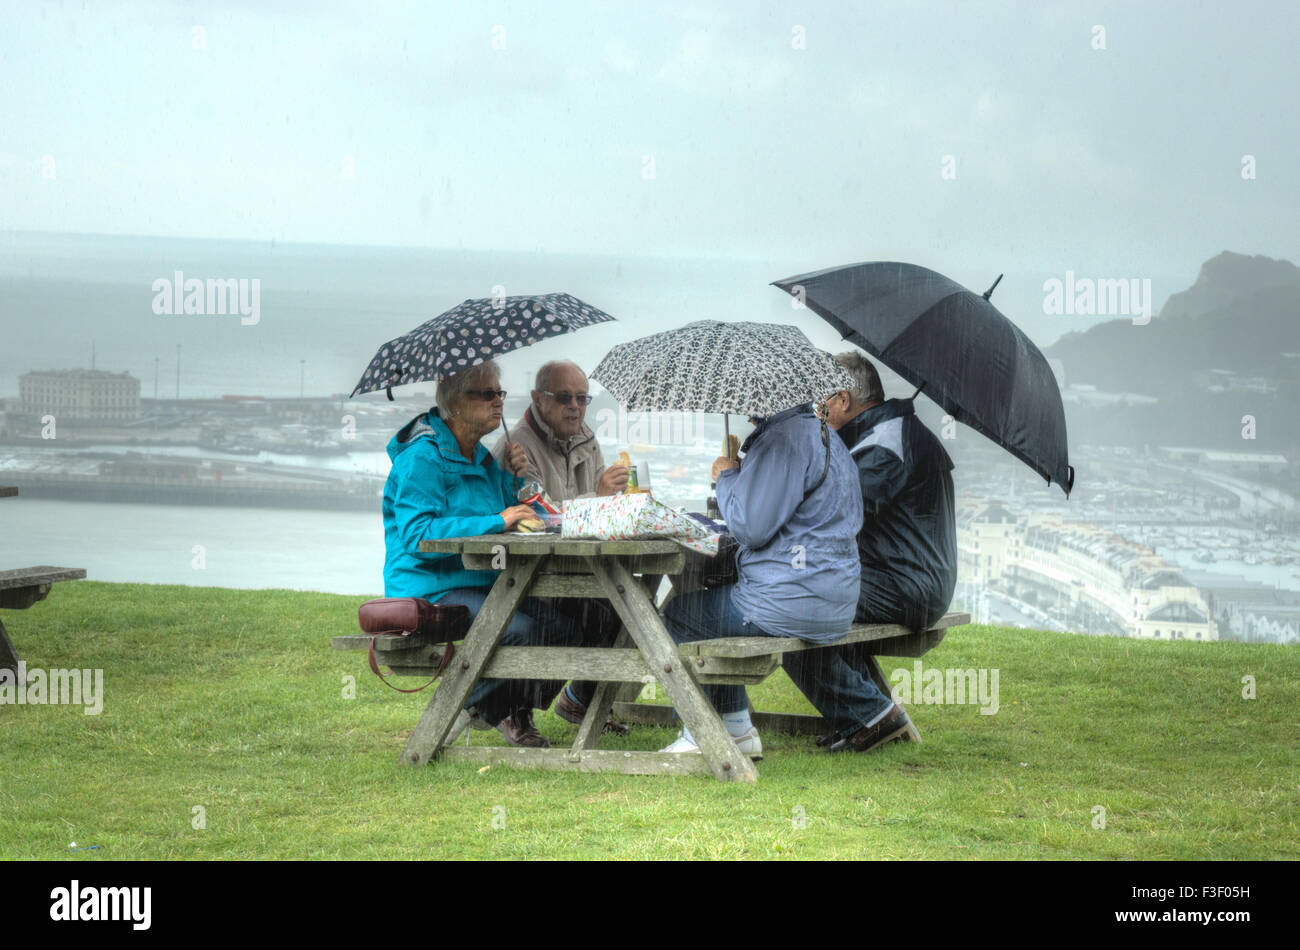 Picnic in the rain.  Picnic in bad weather.  Picnic by the sea bad weather in england - Stock Image